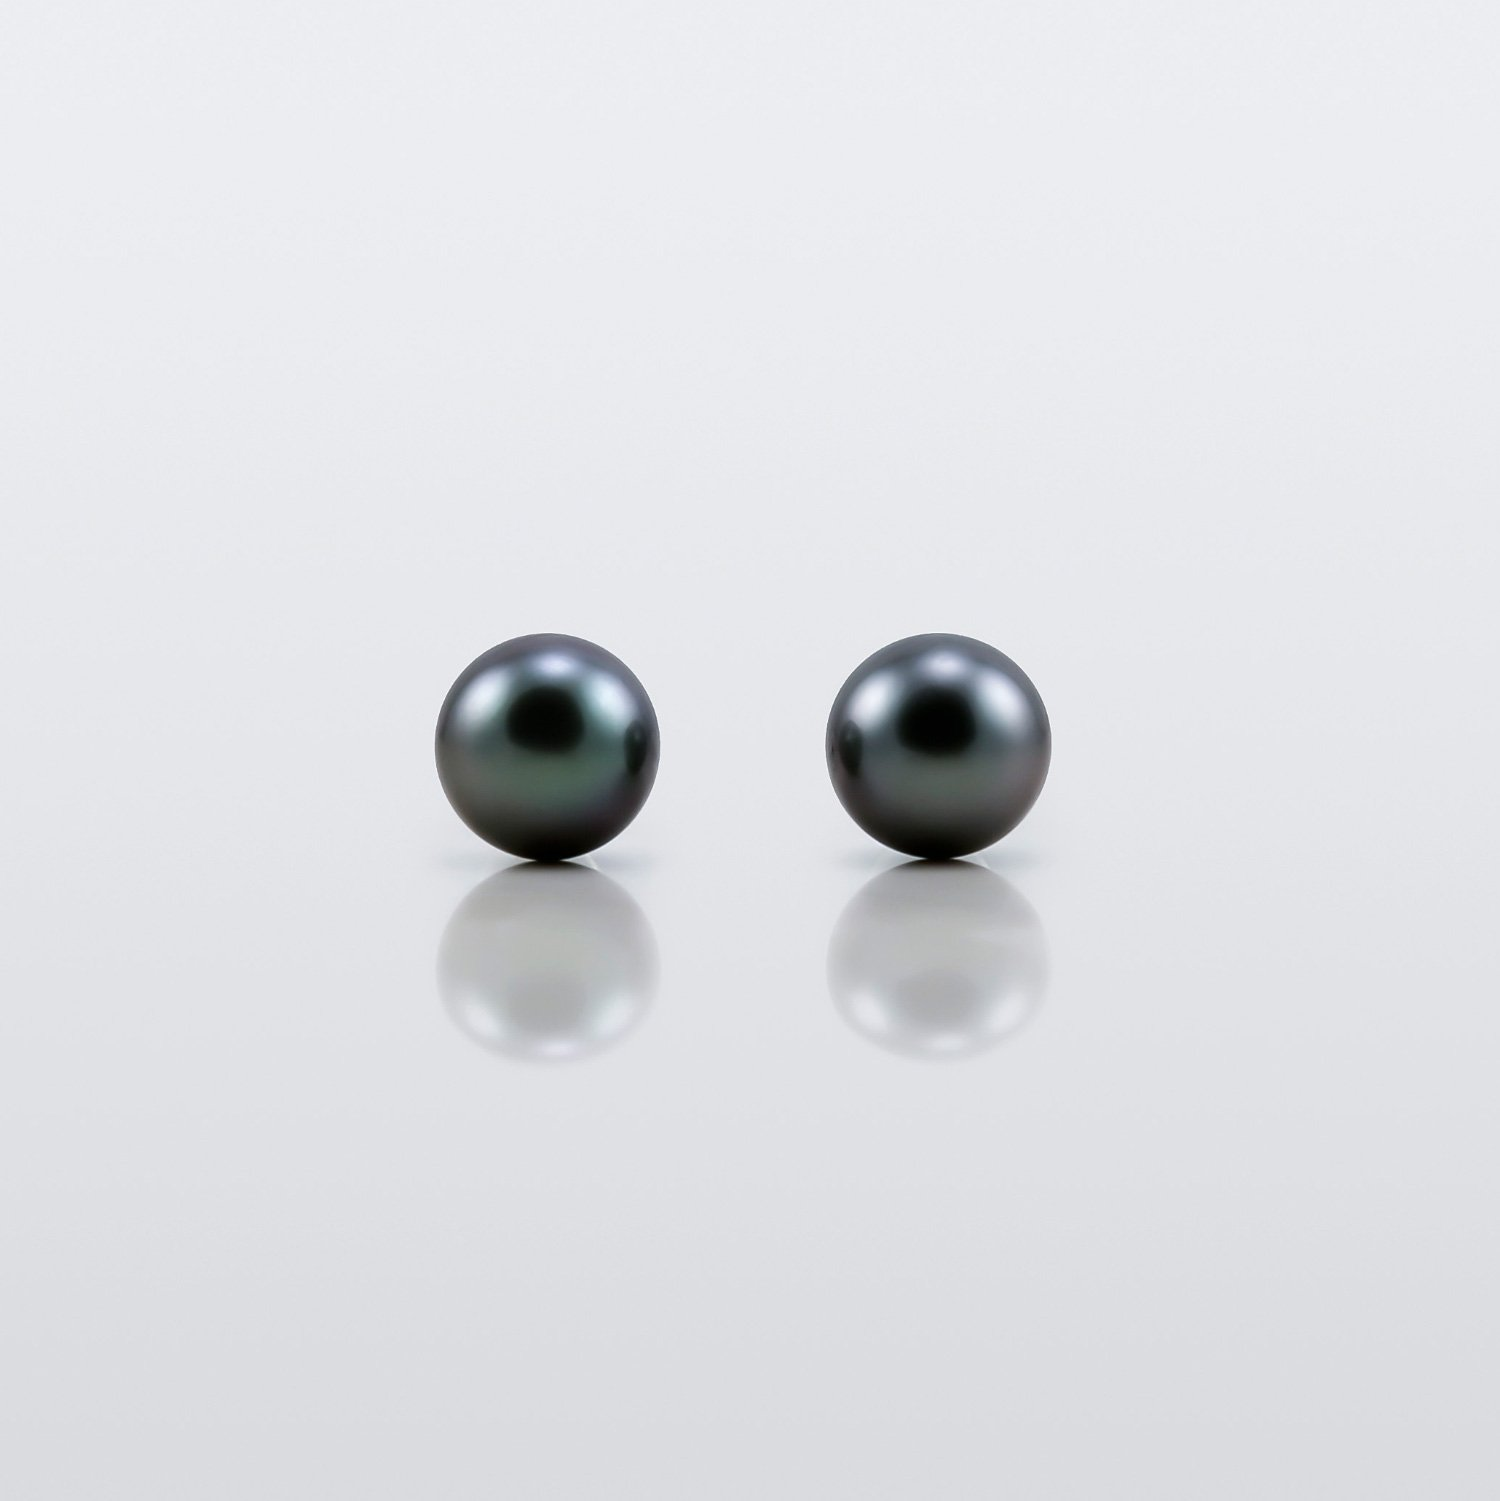 Selene, Black Tahitian Pearl Stud Earrings on a model